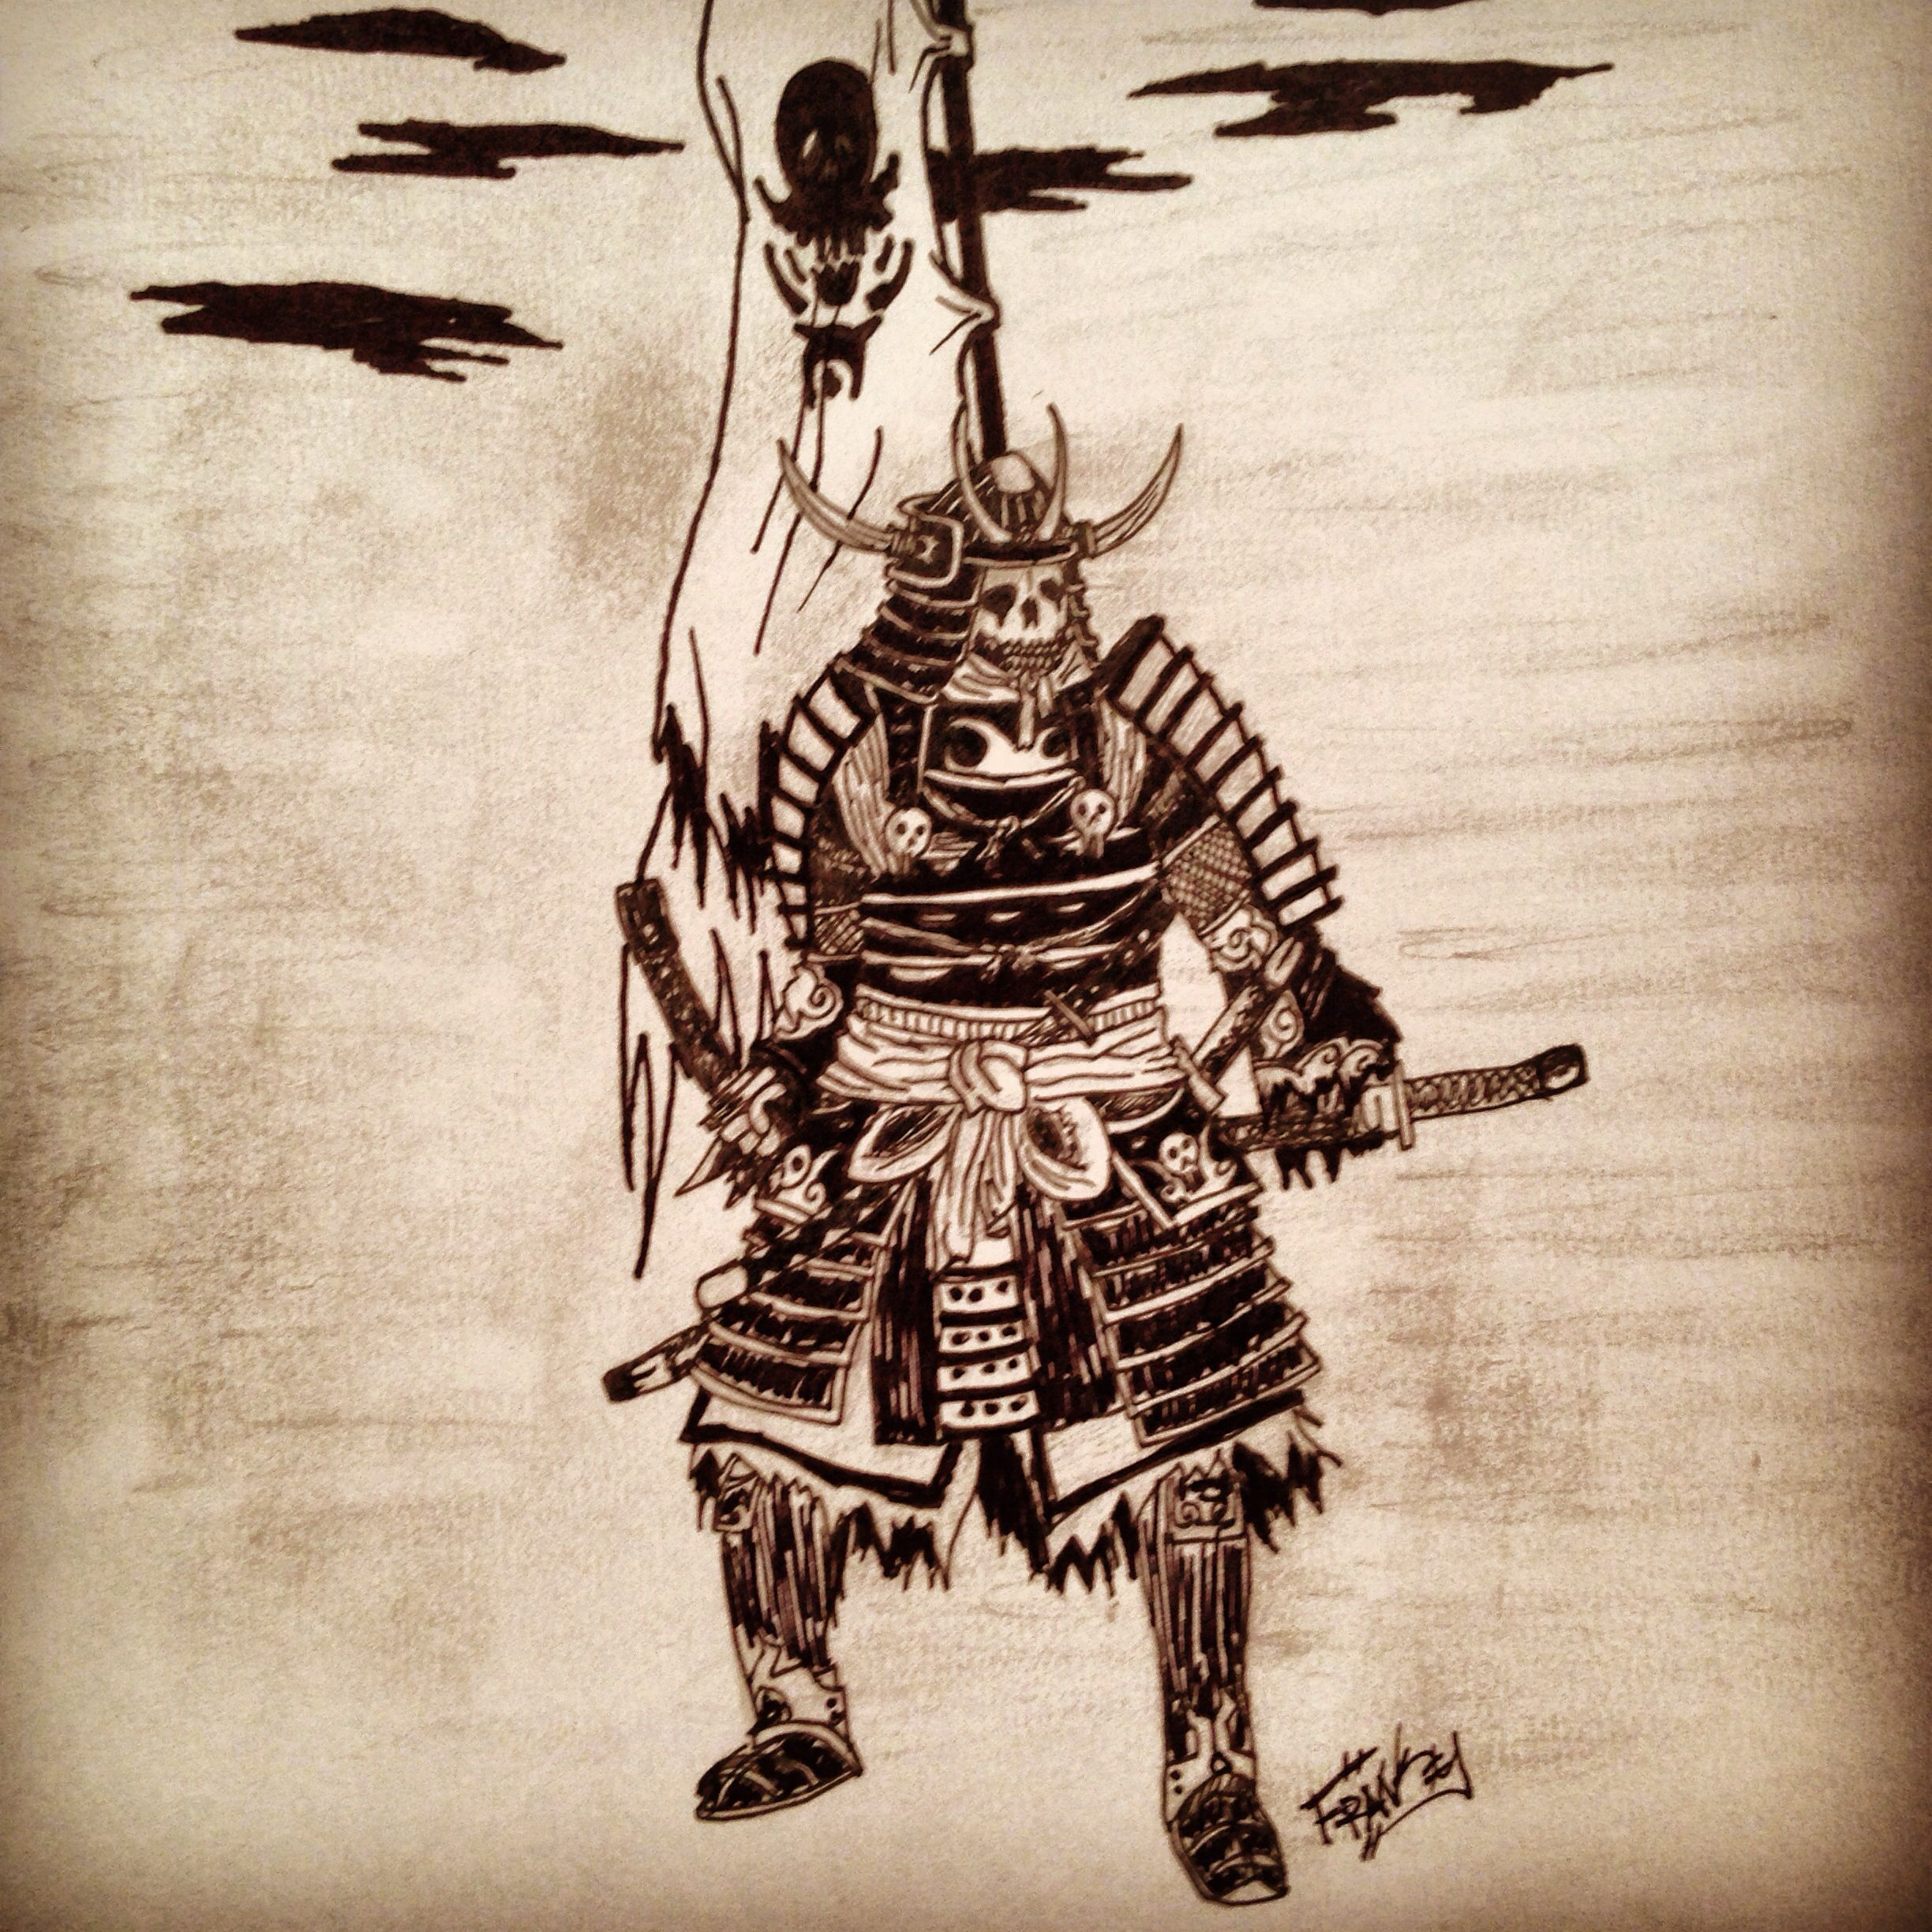 2448x2448 Skeleton Warrior Drawing By Me. Drawings By Frank